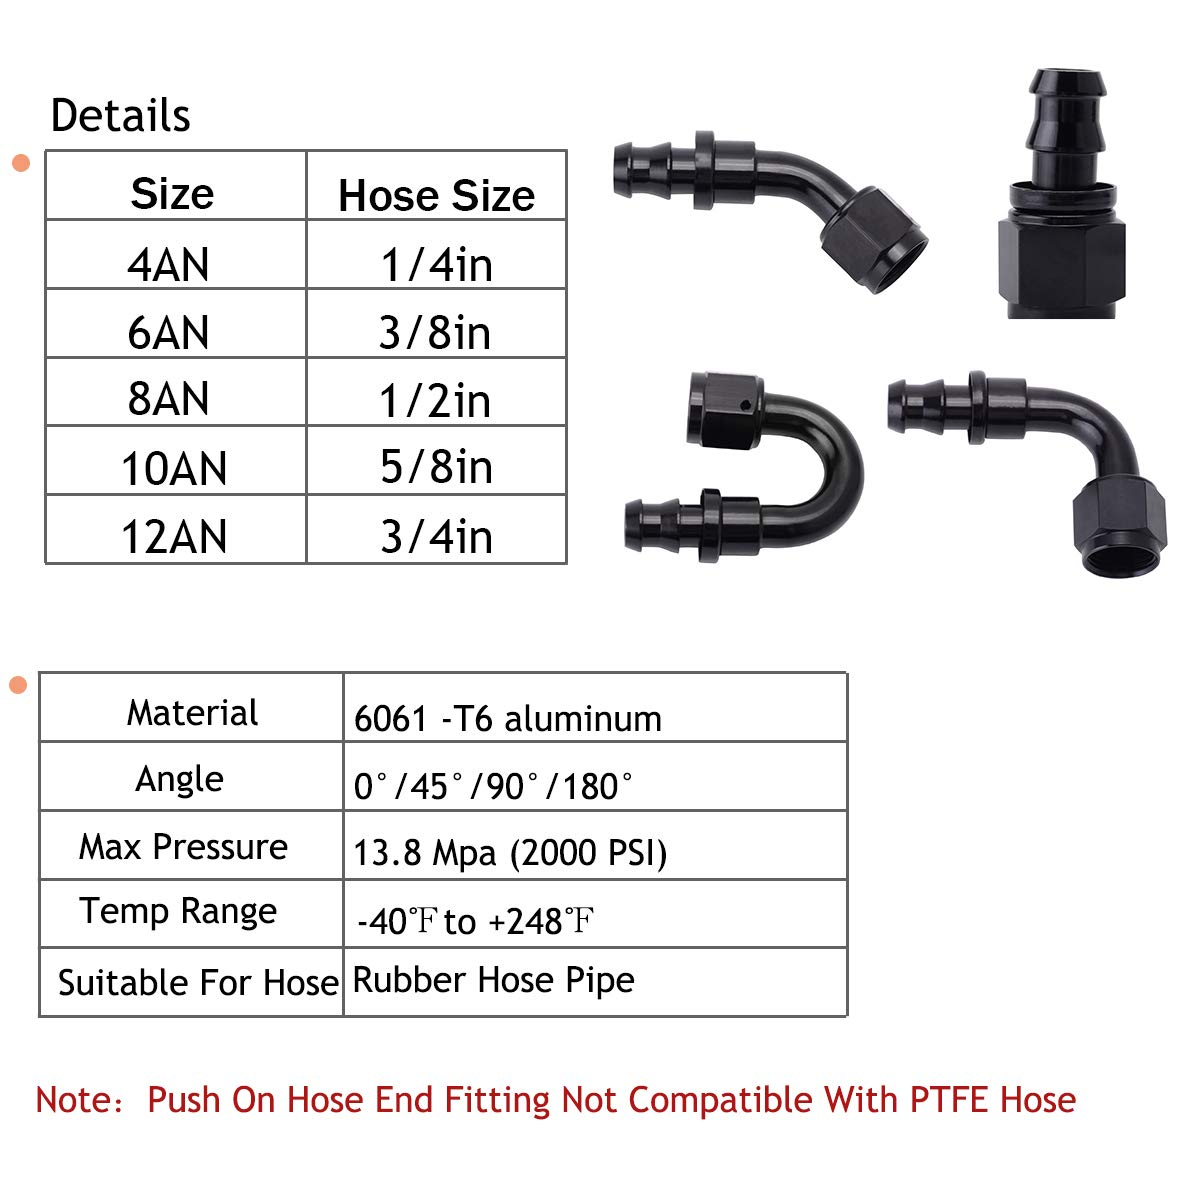 2Pcs 90 Degree Push on Hose End Fitting for 3//8 Fuel Injection Hose ESPEEDER 6AN Push Lock Fitting